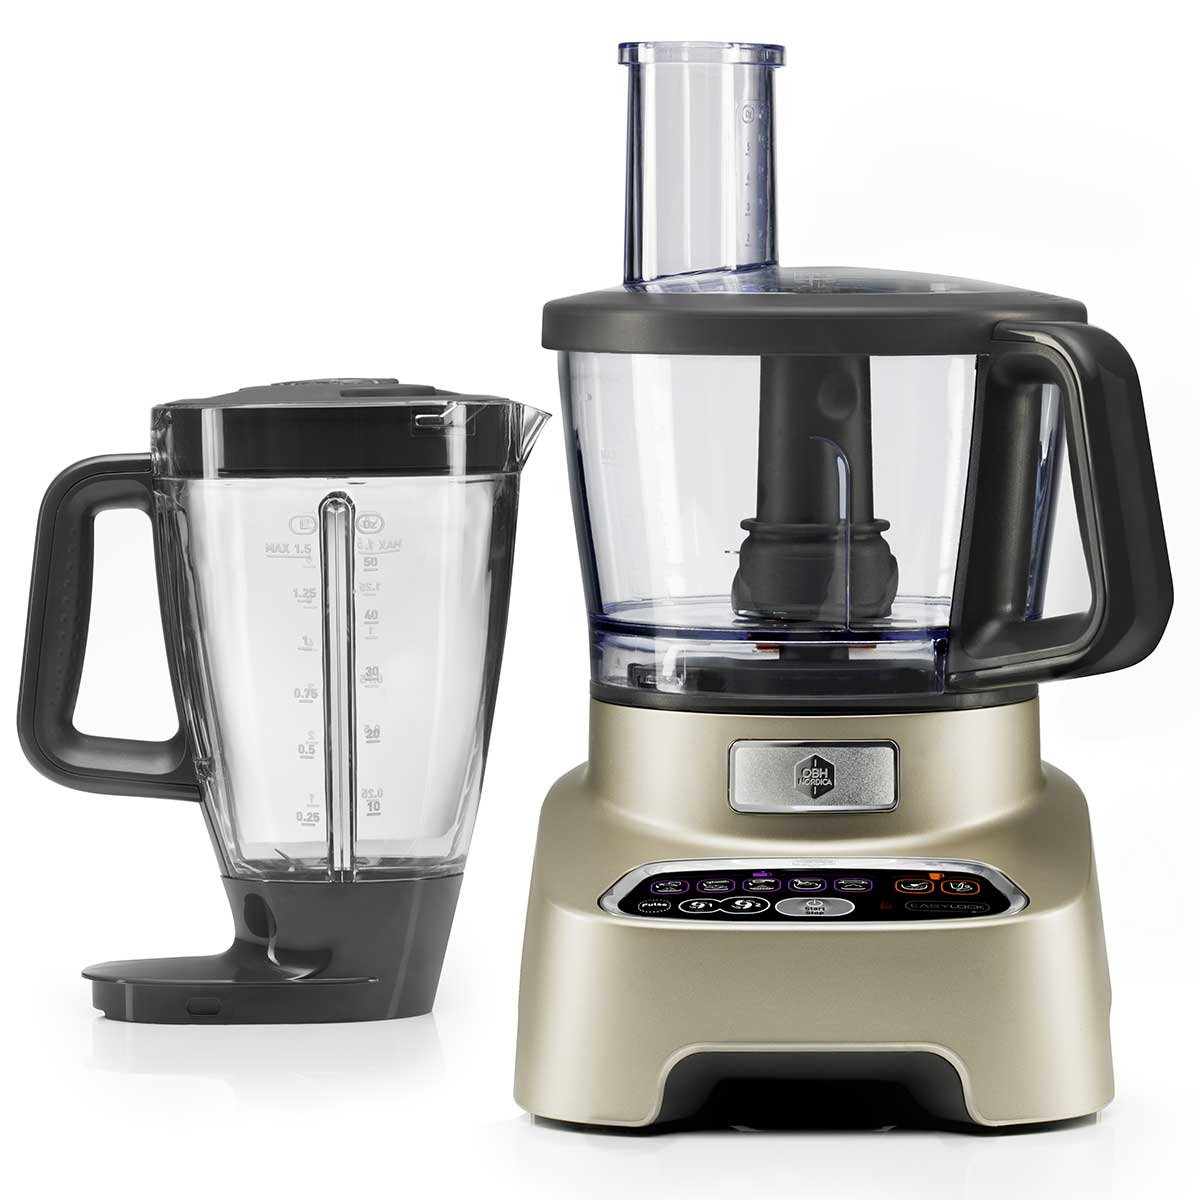 OBH Nordica foodprocessor - Double Force